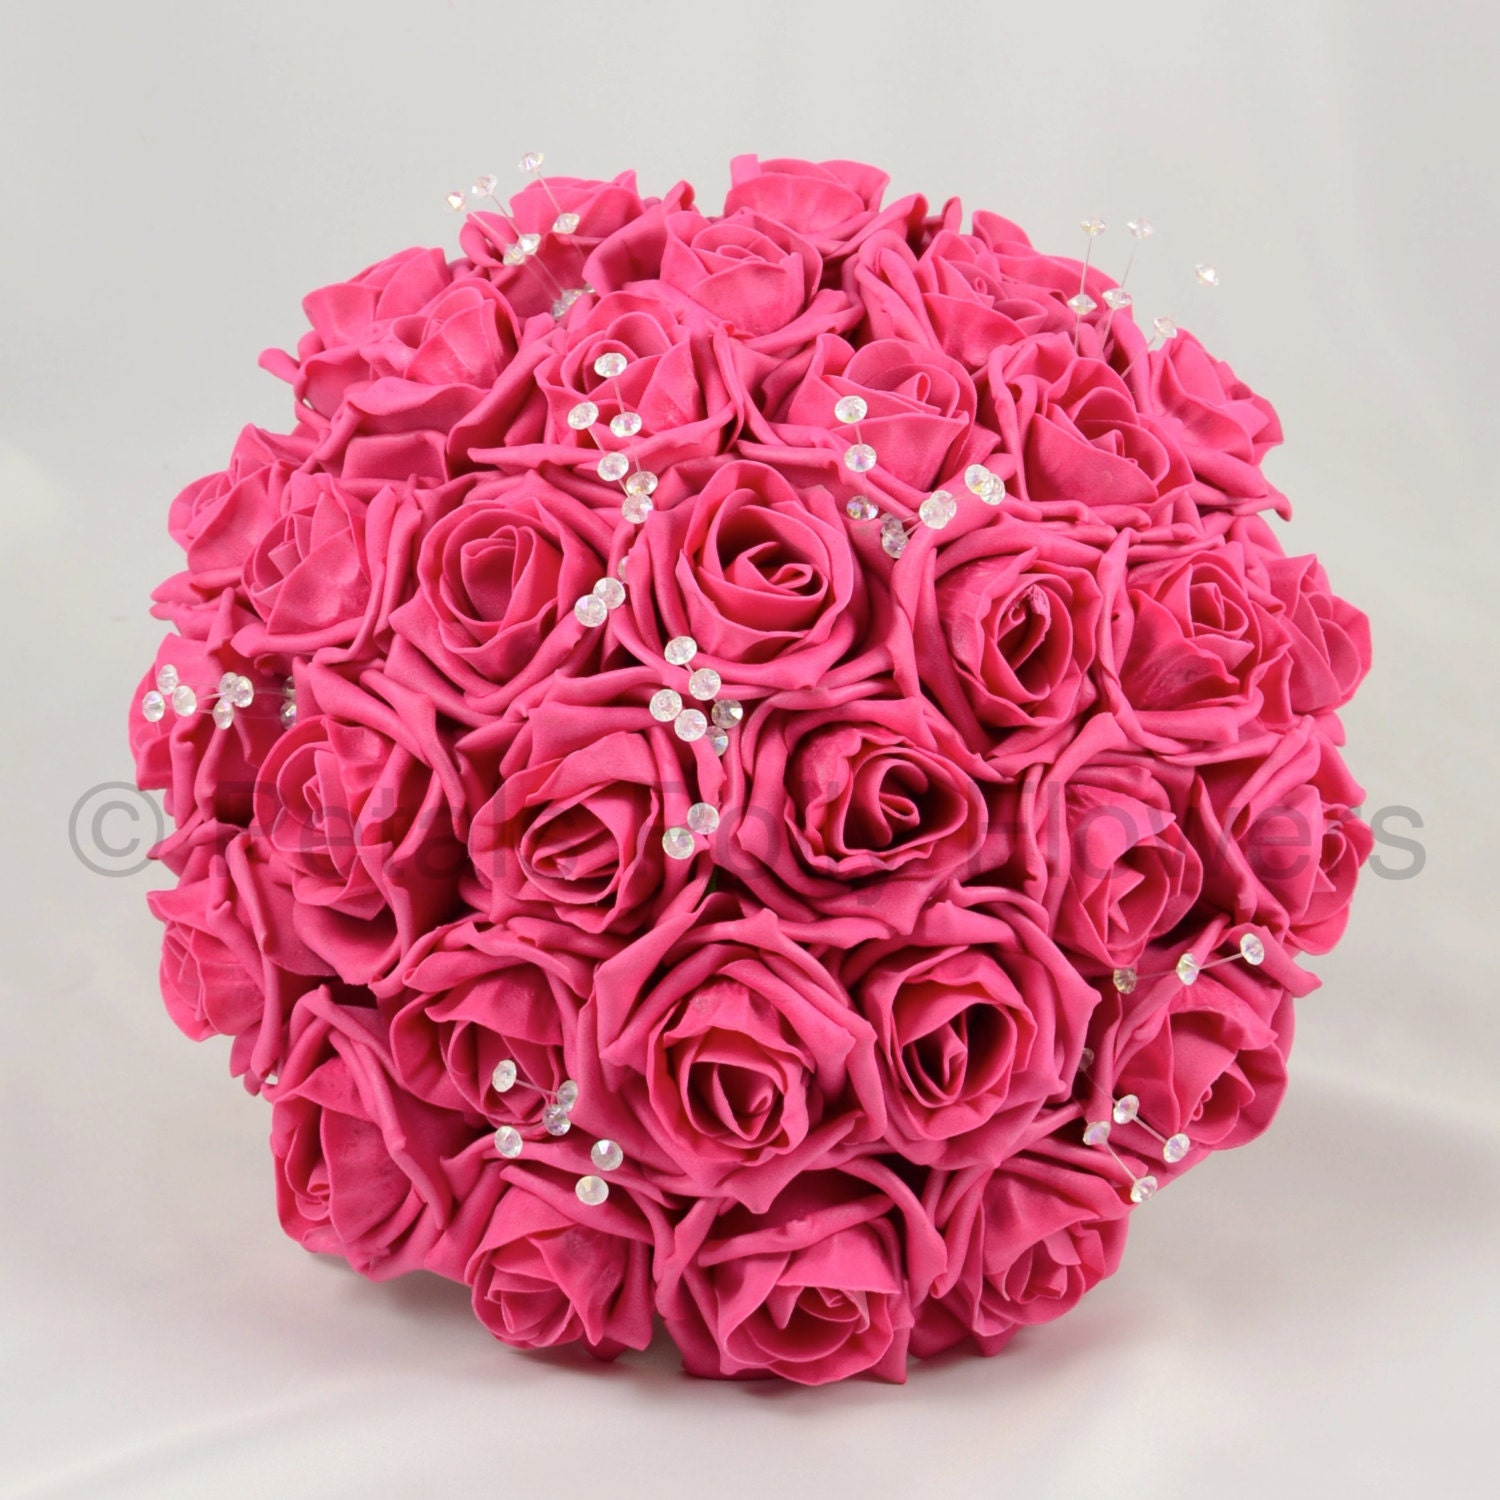 Artificial Wedding Flowers Hot Pink Brides Bouquet Posy